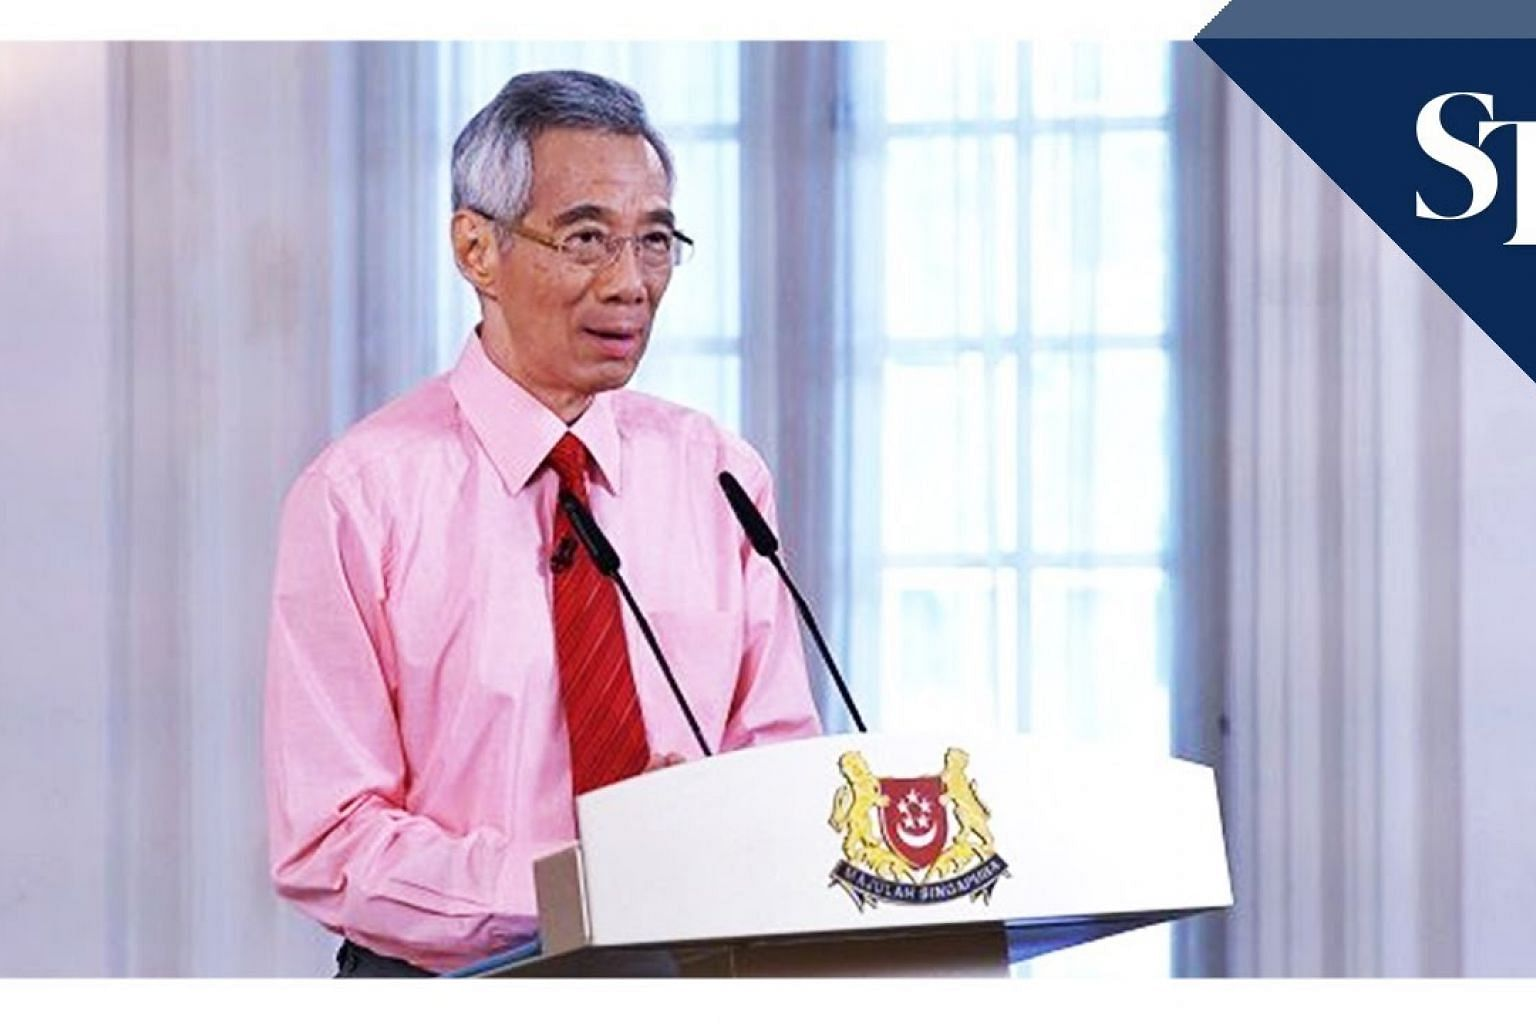 Breaking news: Prime Minister Lee to address Singapore on Covid-19 situation | The Big Story